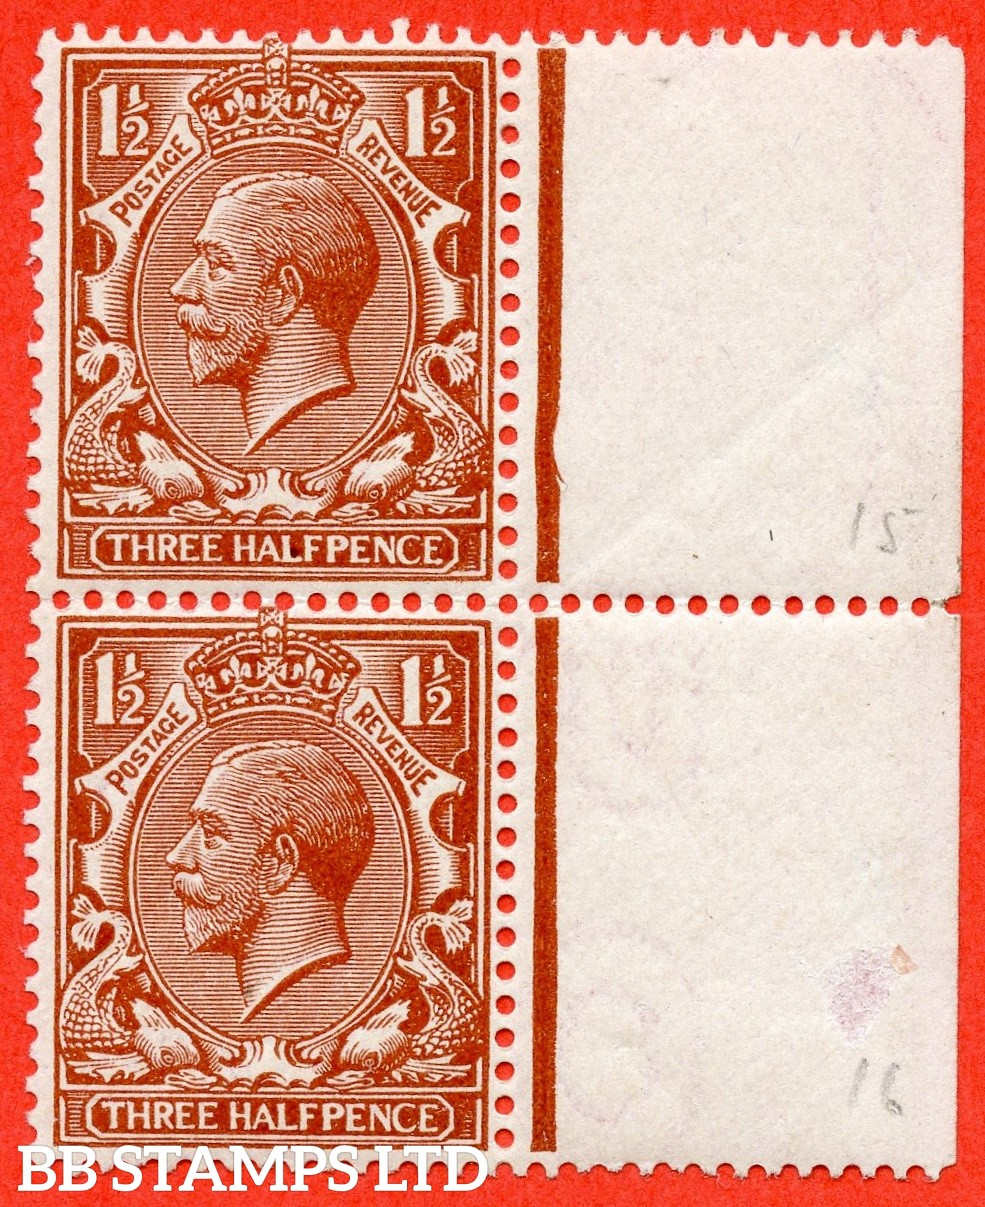 """SG. 362. N18 (1) h. 1½d red - brown. A lightly mounted mint left hand marginal vertical pair with the top stamp having the listed """" PENCE repaired ( Plate 29. Row 15/12 ) """" variety. Complete with BPA certificate."""